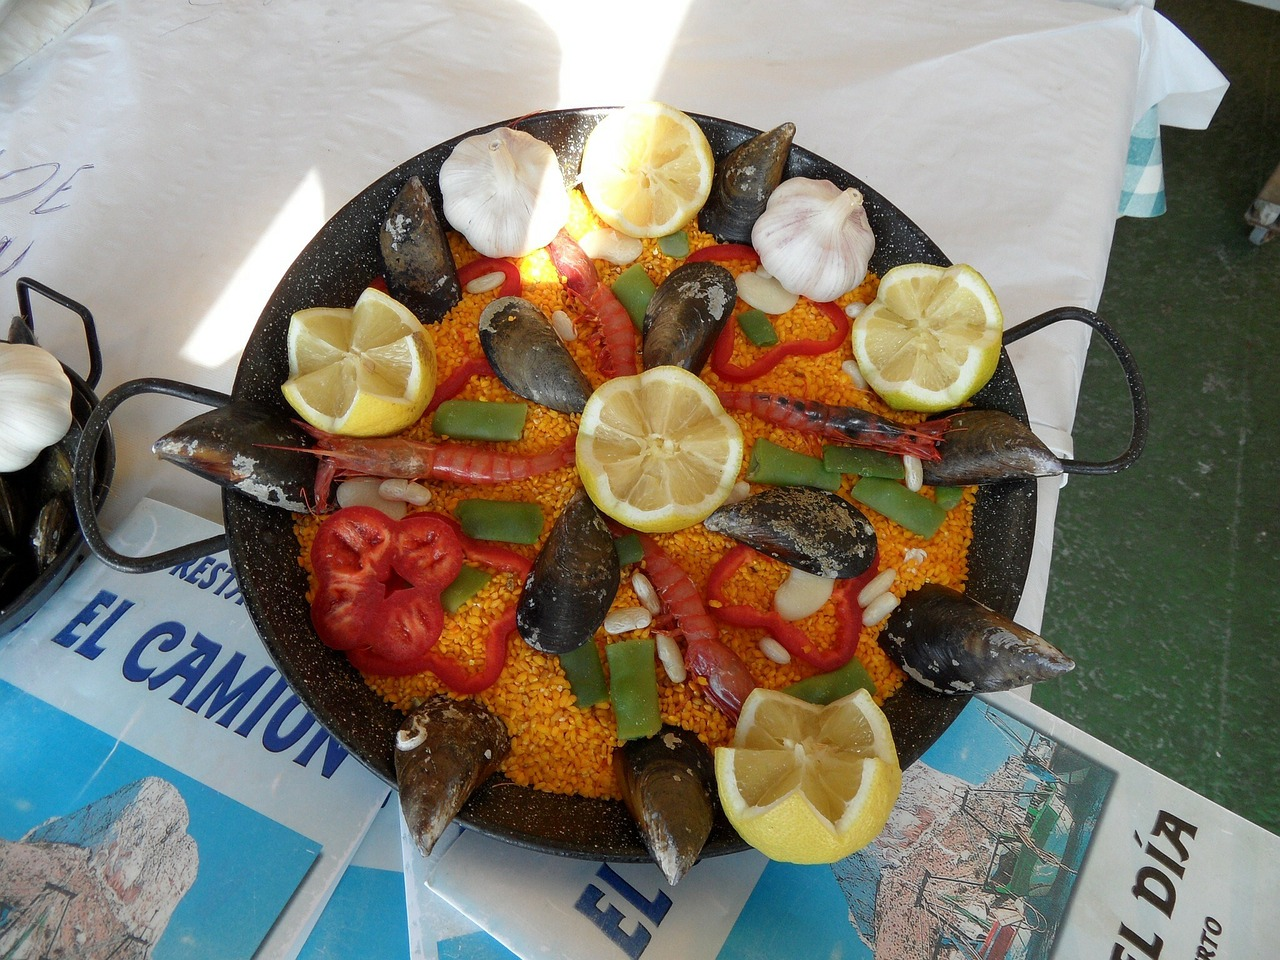 paella spain food free photo